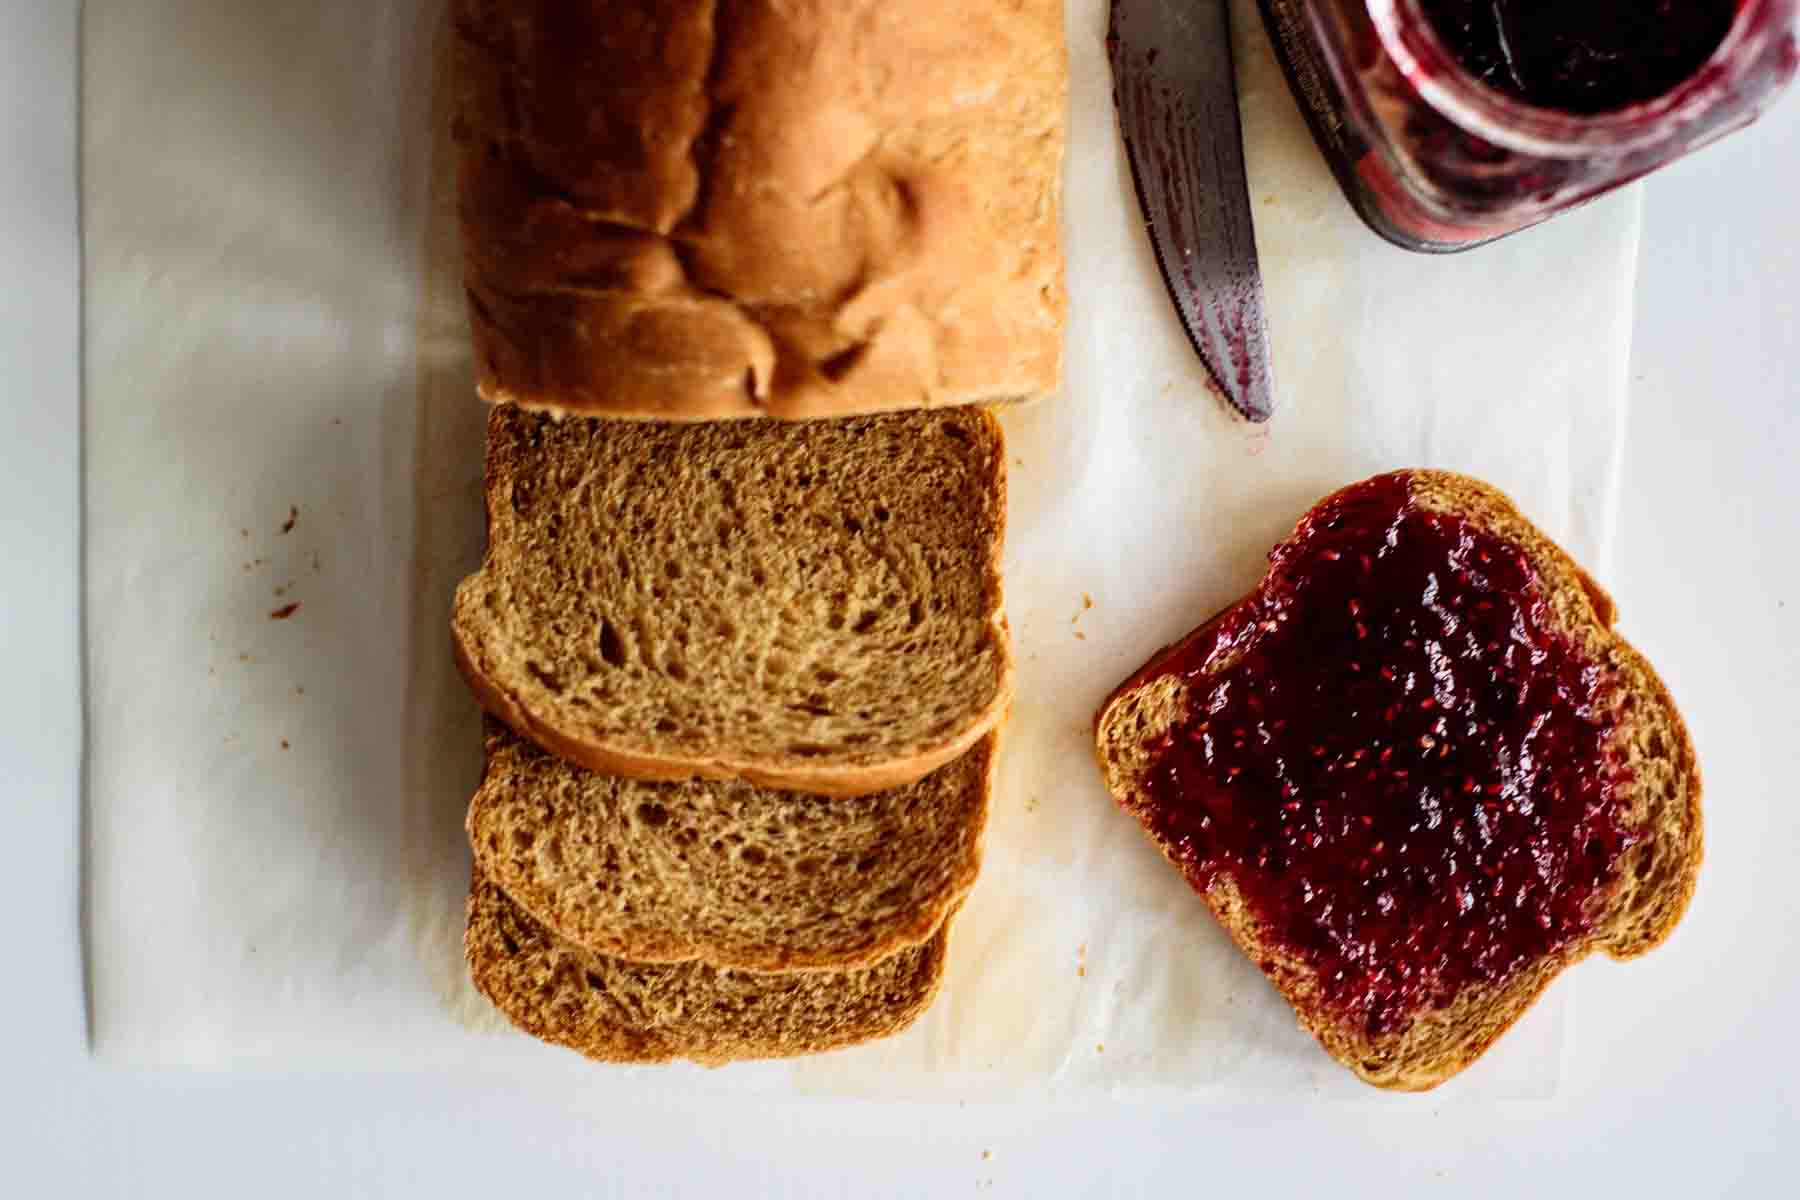 slice of bread with raspberry jam, bread, jam and knive